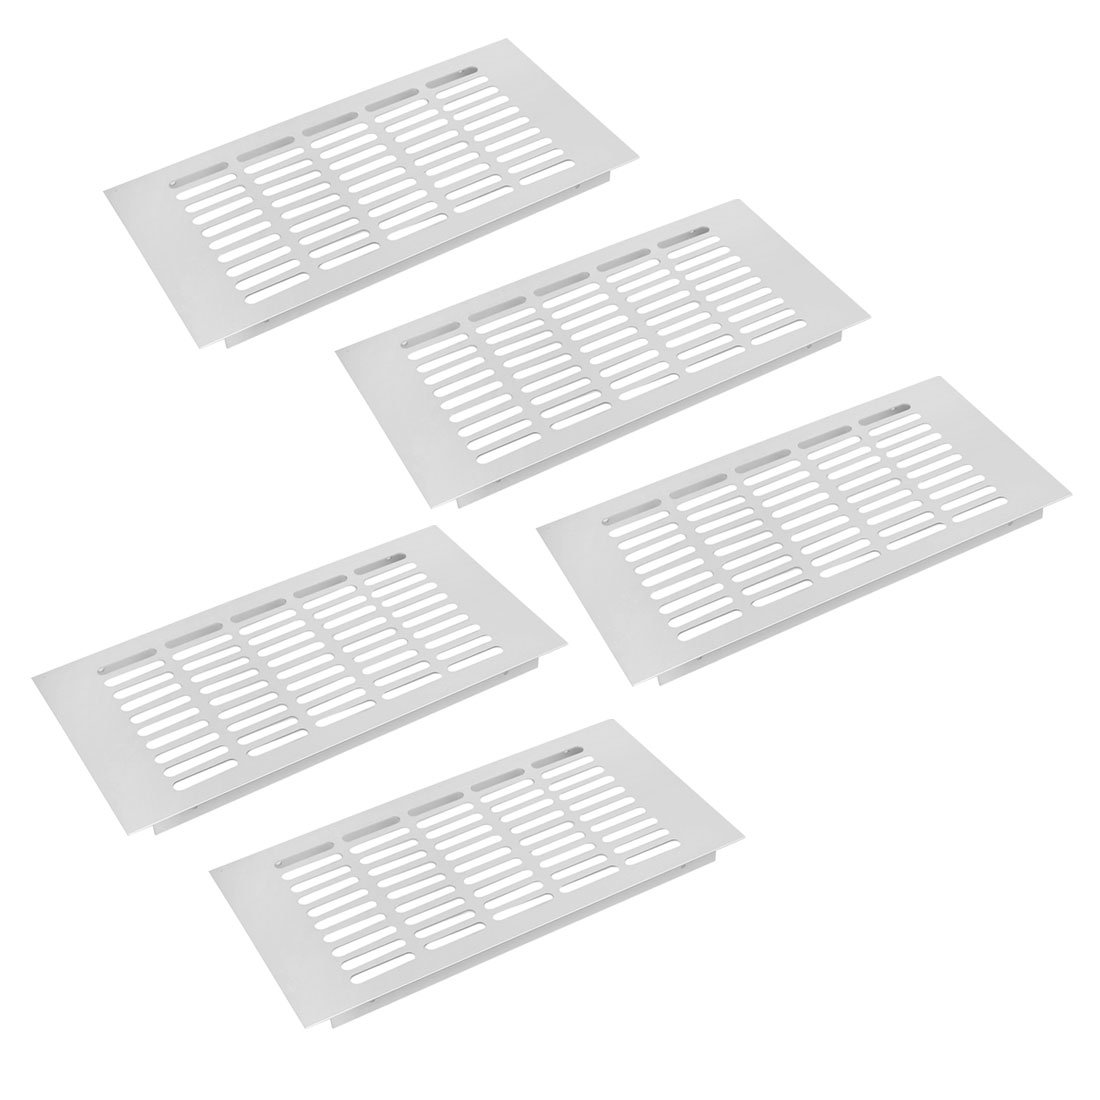 uxcell 5pcs 300mmx150mm Aluminum Alloy Air Vent Louvered Grill Cover Ventilation Grille